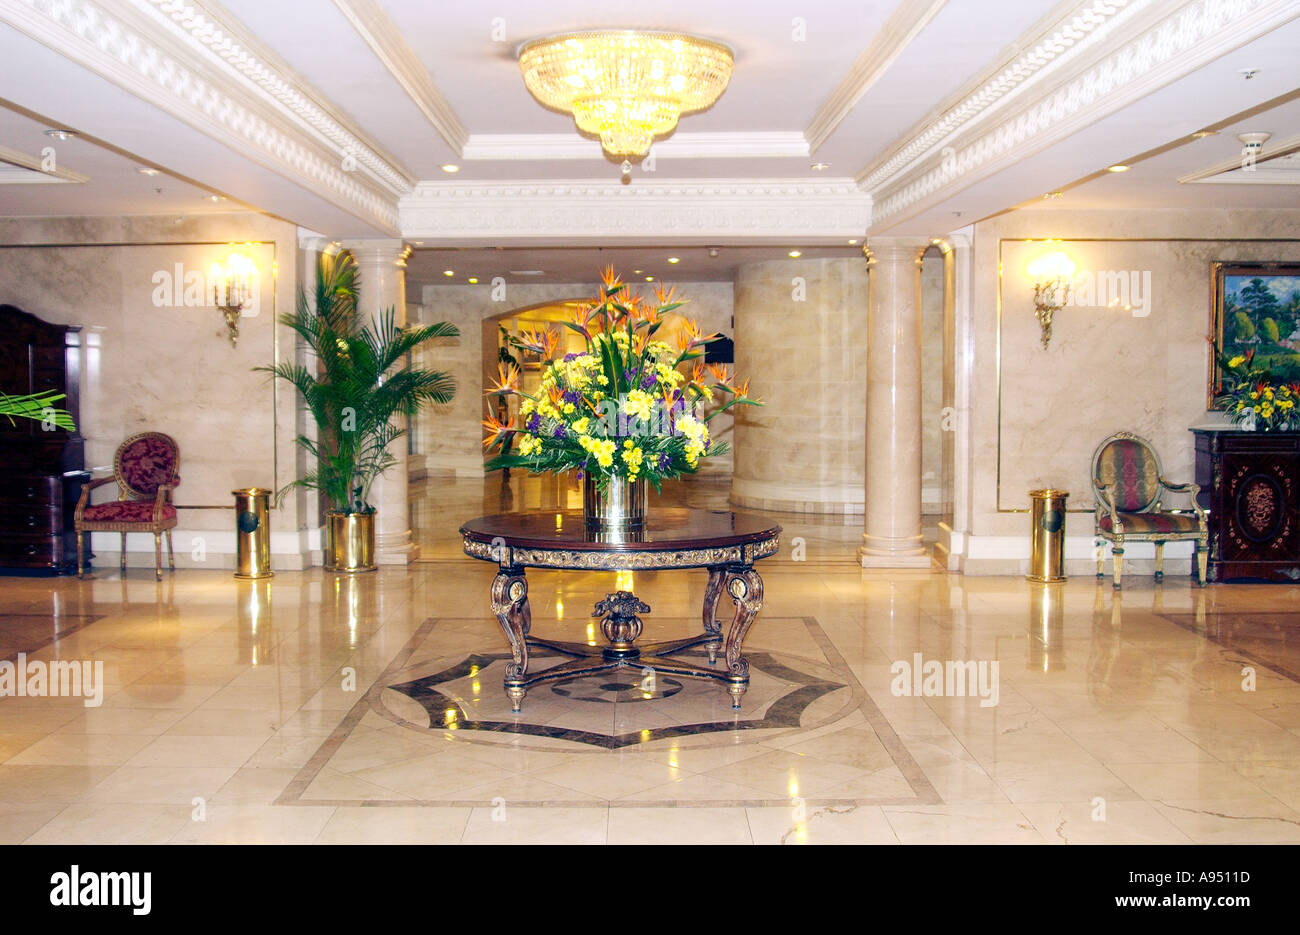 The Camino Real Resort Hotel interior lobby decor with table and  centerpiece in Guatemala City, Guatemala